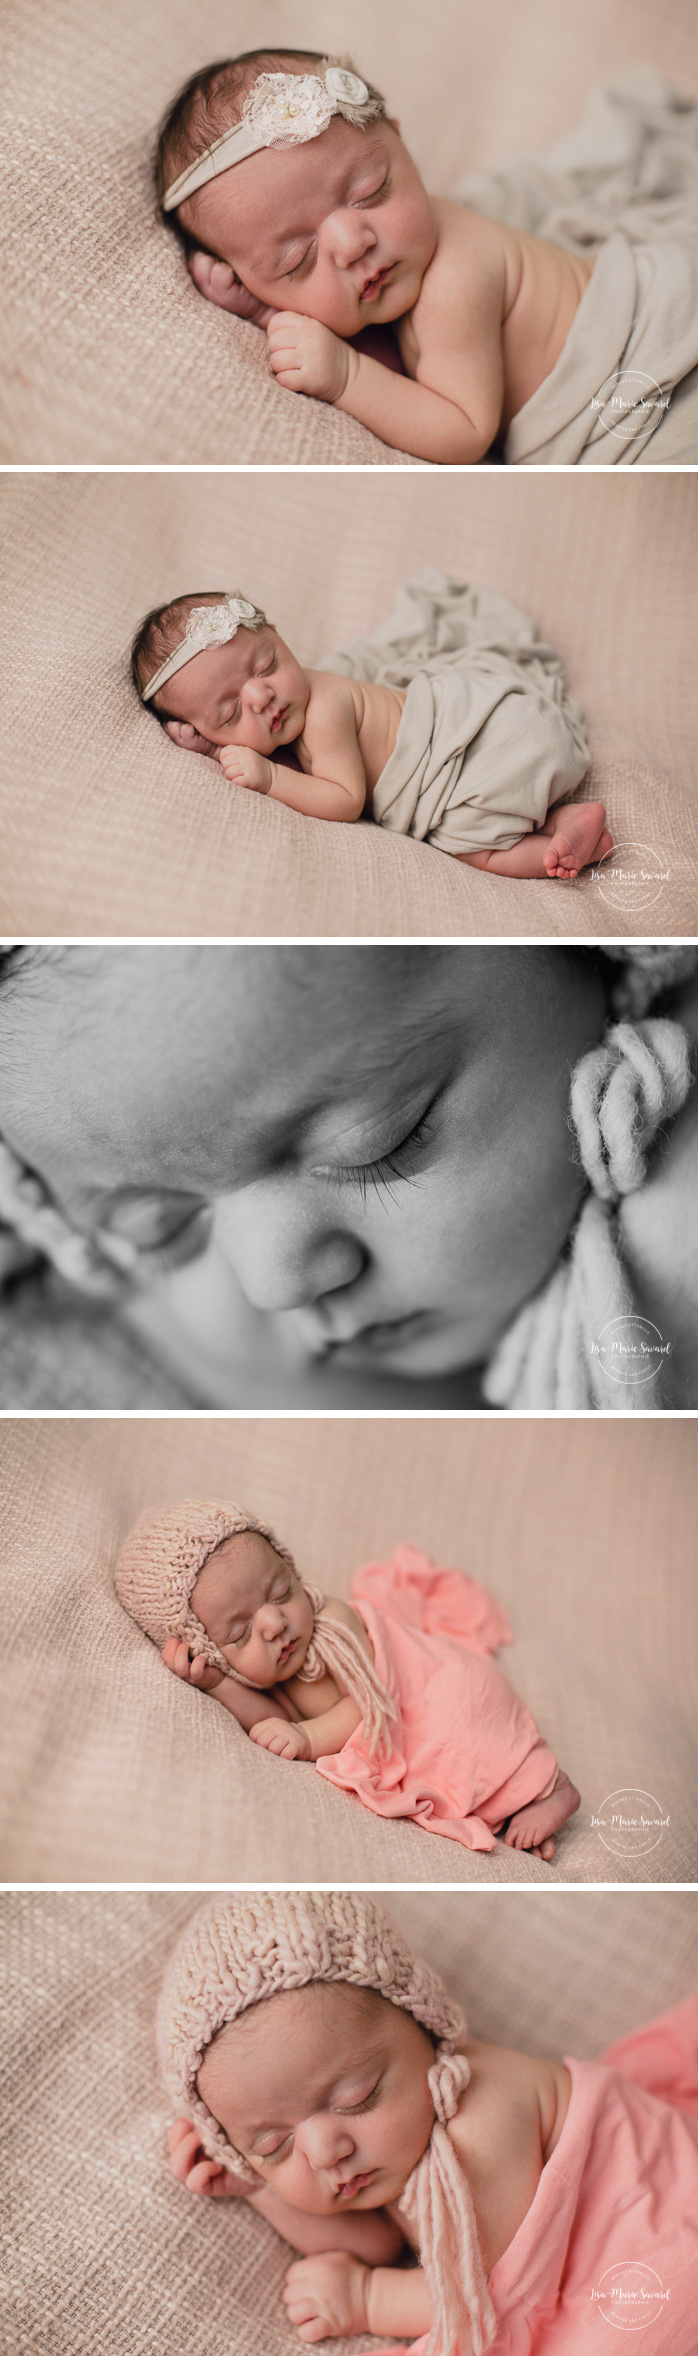 Newborn baby girl. Newborn session ideas. Simple clean minimalist newborn photos. Newborn tushy up bum up pose. Organic neutral newborn photos. Baby girl organic floral tie back headband. Photographe de nouveau-né à Montréal. Séance photo nouveau-né en studio à Montréal. Montreal newborn photographer. In-studio newborn session Montreal | Lisa-Marie Savard Photographie | Montréal, Québec | www.lisamariesavard.com